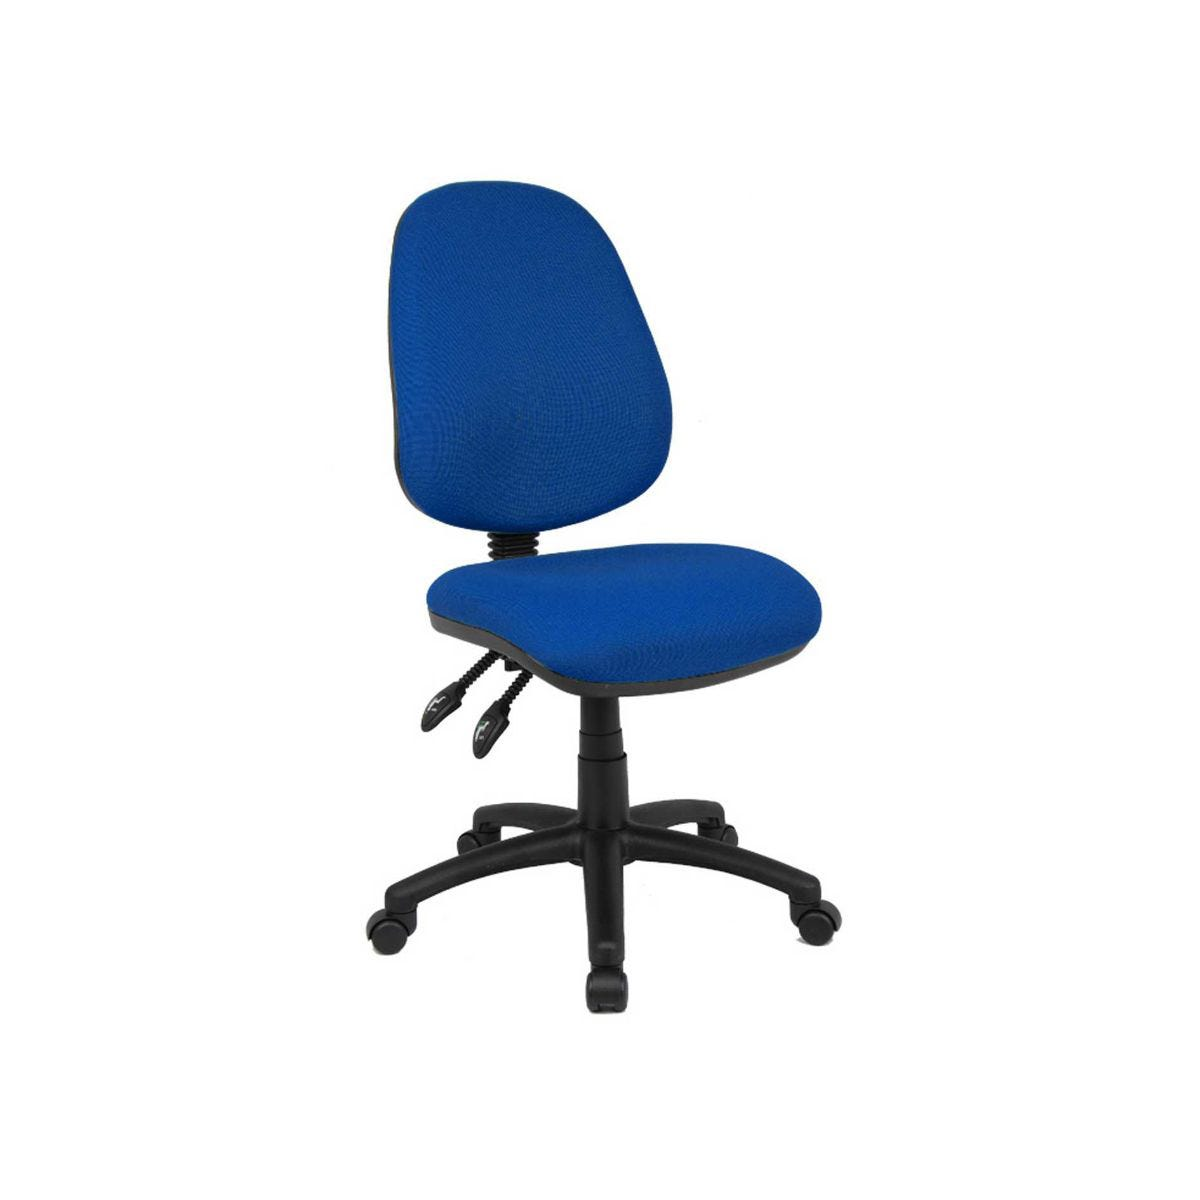 fice Chairs & Seating Furniture & Storage Ryman